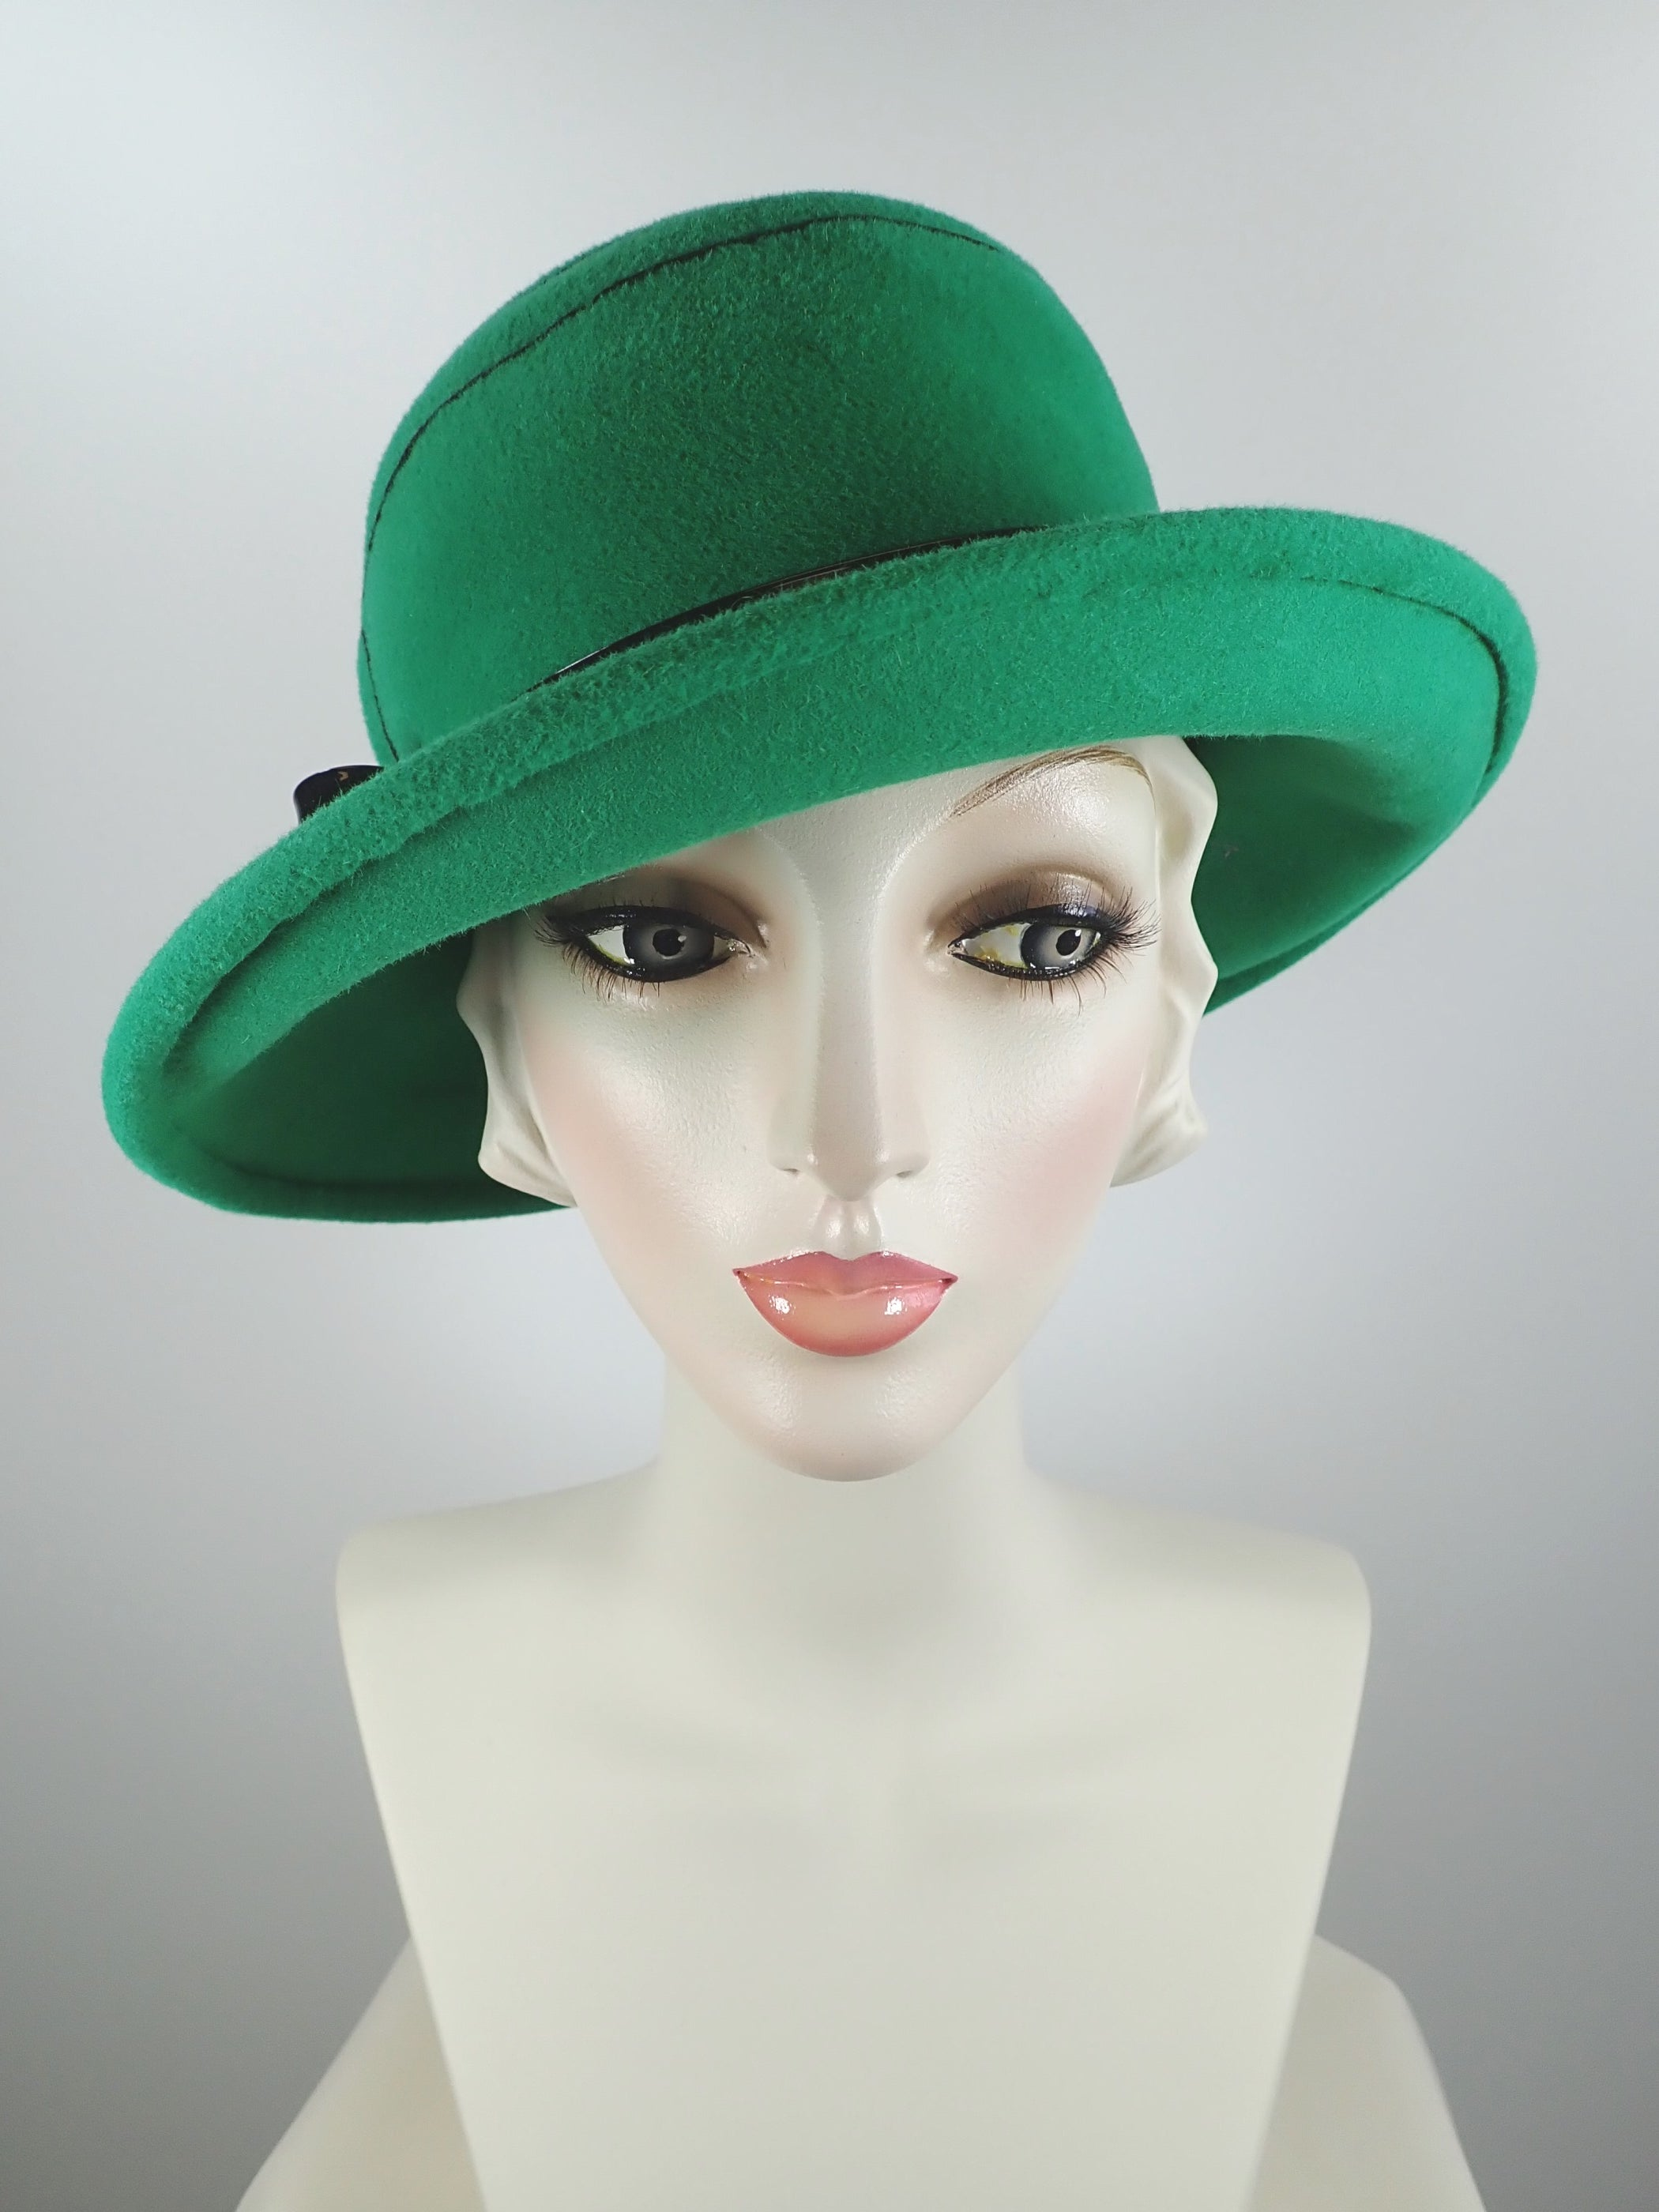 Green wool felt cloche hat with black embroidery and patent leather band